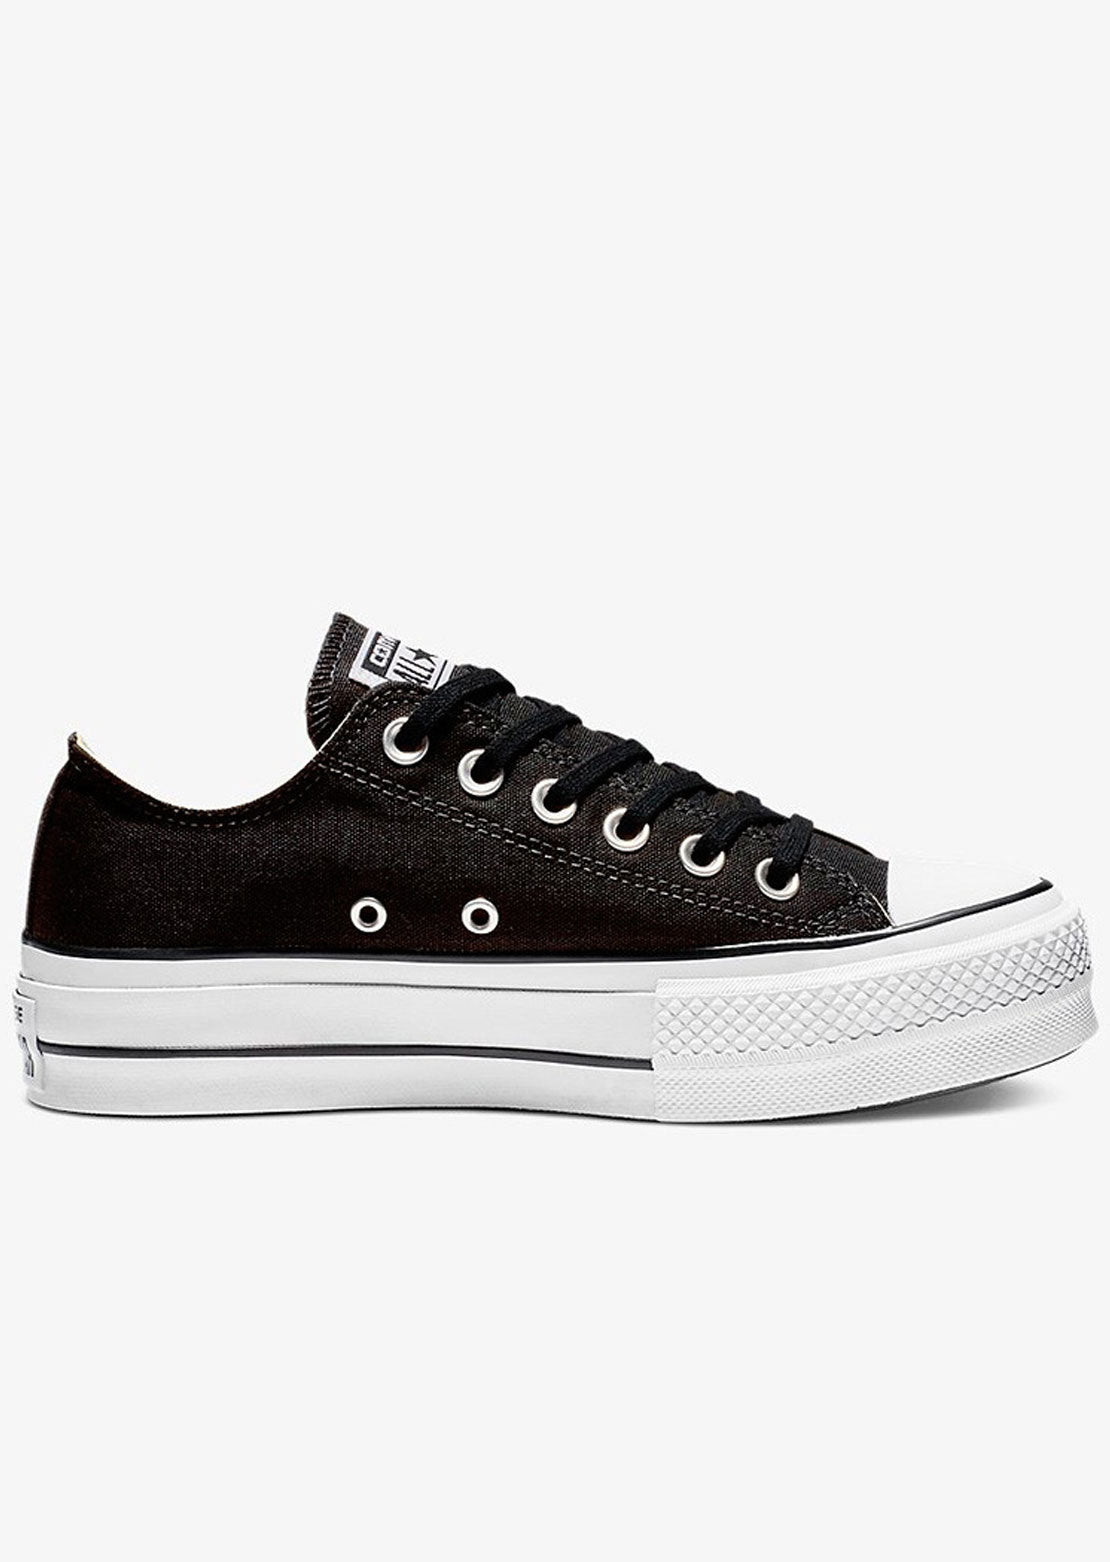 Converse Women's Chuck Taylor OX Lift Platform Shoes 560250C Black/White